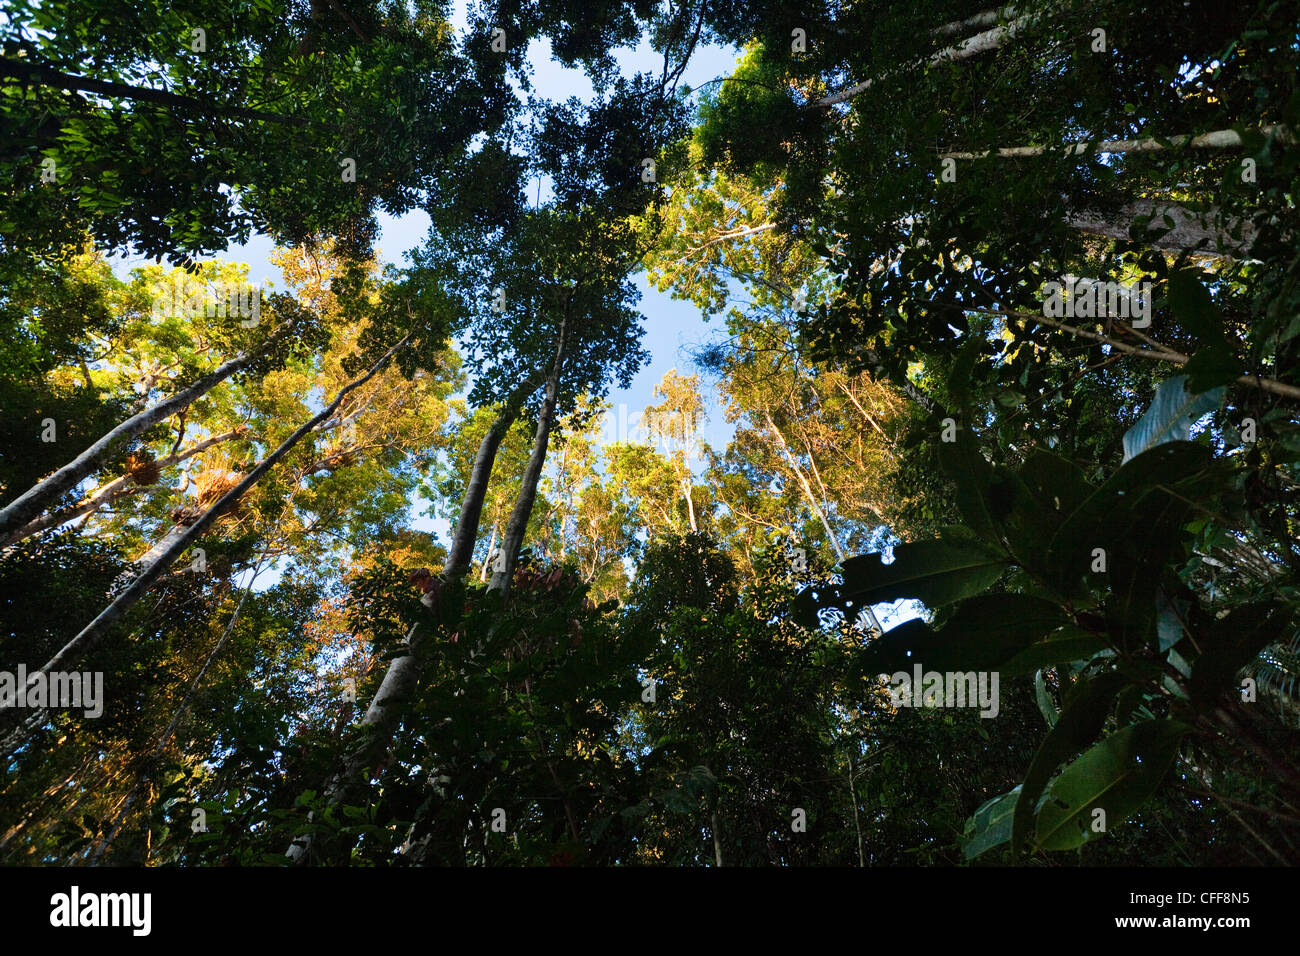 Low angle view of trees in the rainforest, Atherton Tablelands, Queensland, Australia - Stock Image